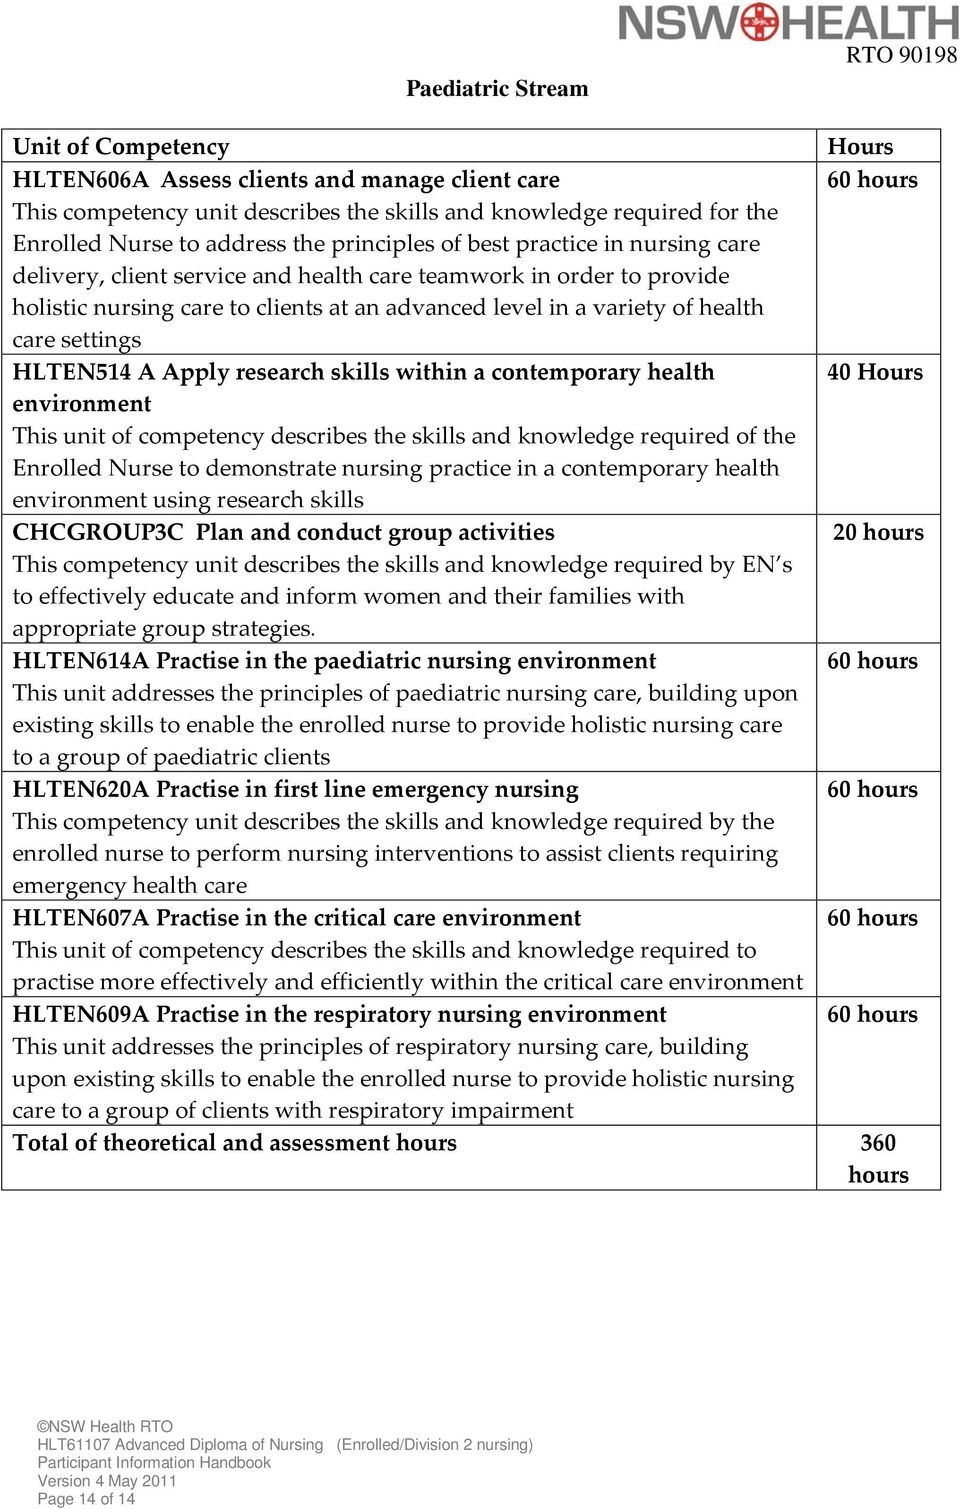 settings HLTEN514 A Apply research skills within a contemporary health 40 Hours environment This unit of competency describes the skills and knowledge required of the Enrolled Nurse to demonstrate